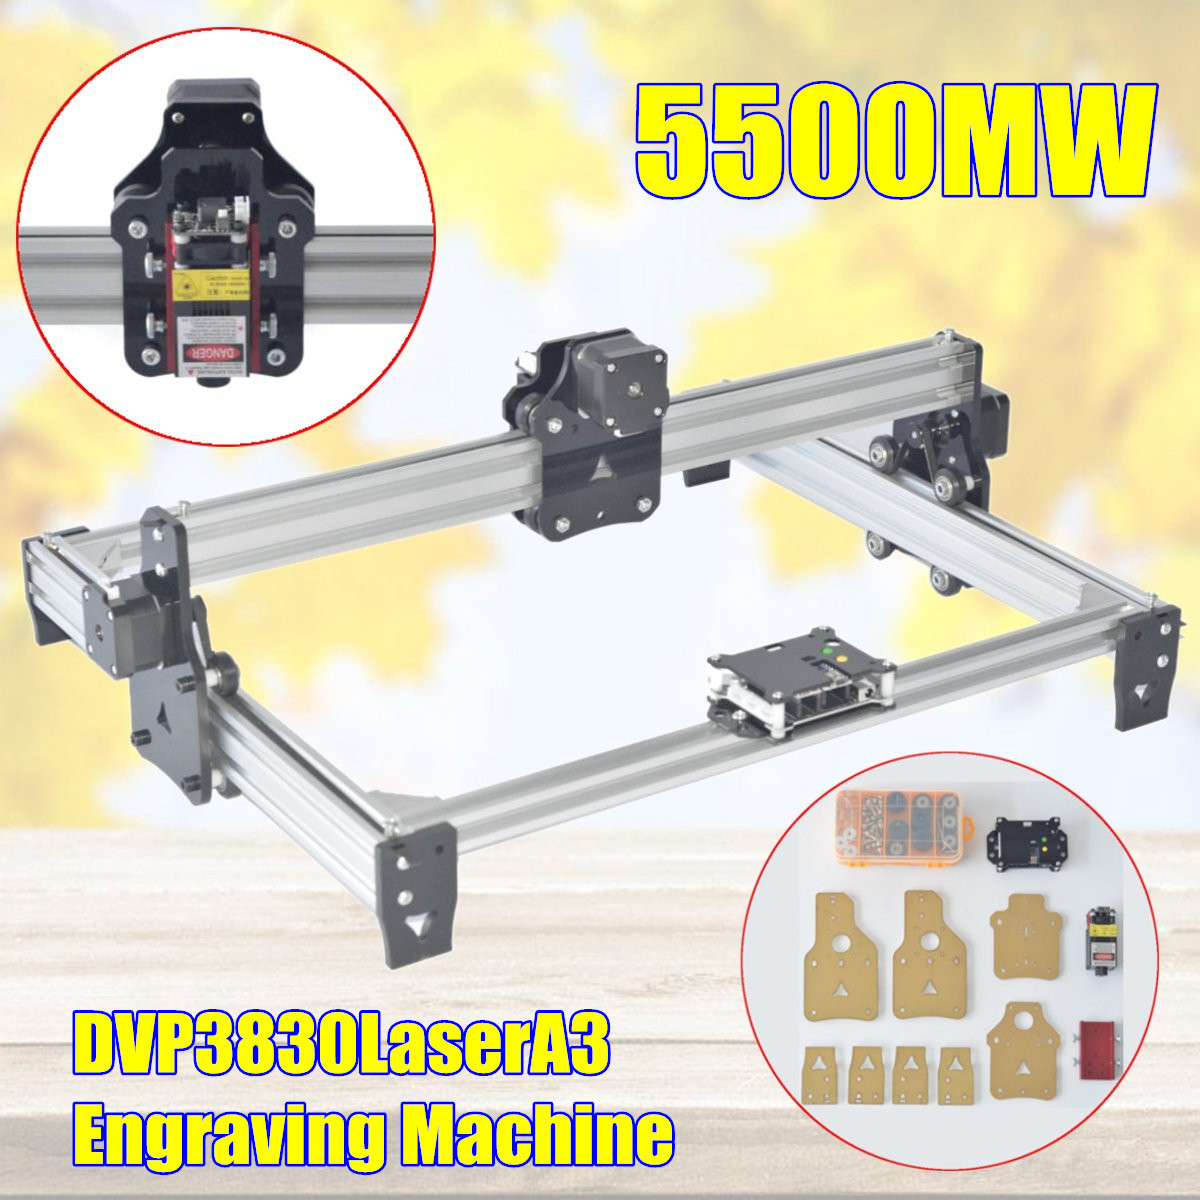 5500mw DVP 3830 Laser A3 Engraving Machine,DIY Laser Engraver Machine,Wood Router,laser cutter,cnc router,Woodworking Machinery various ballads of beauty